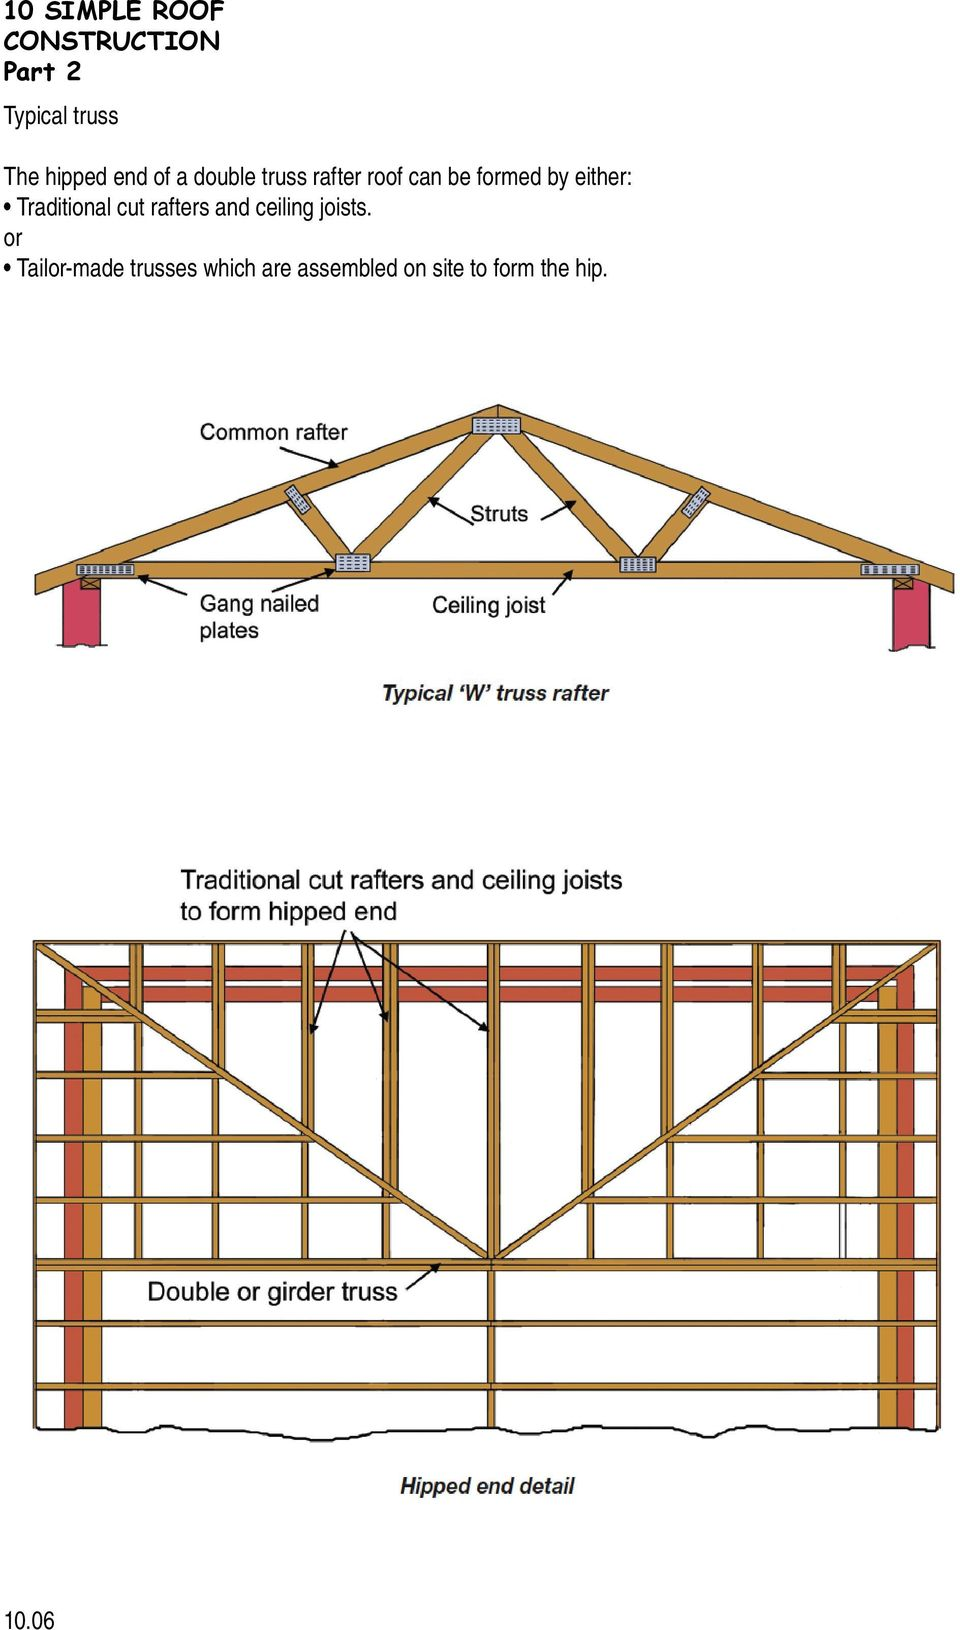 Fca Carpentry Joinery Theory 10 Simple Roof Construction Part 2 Pdf Free Download